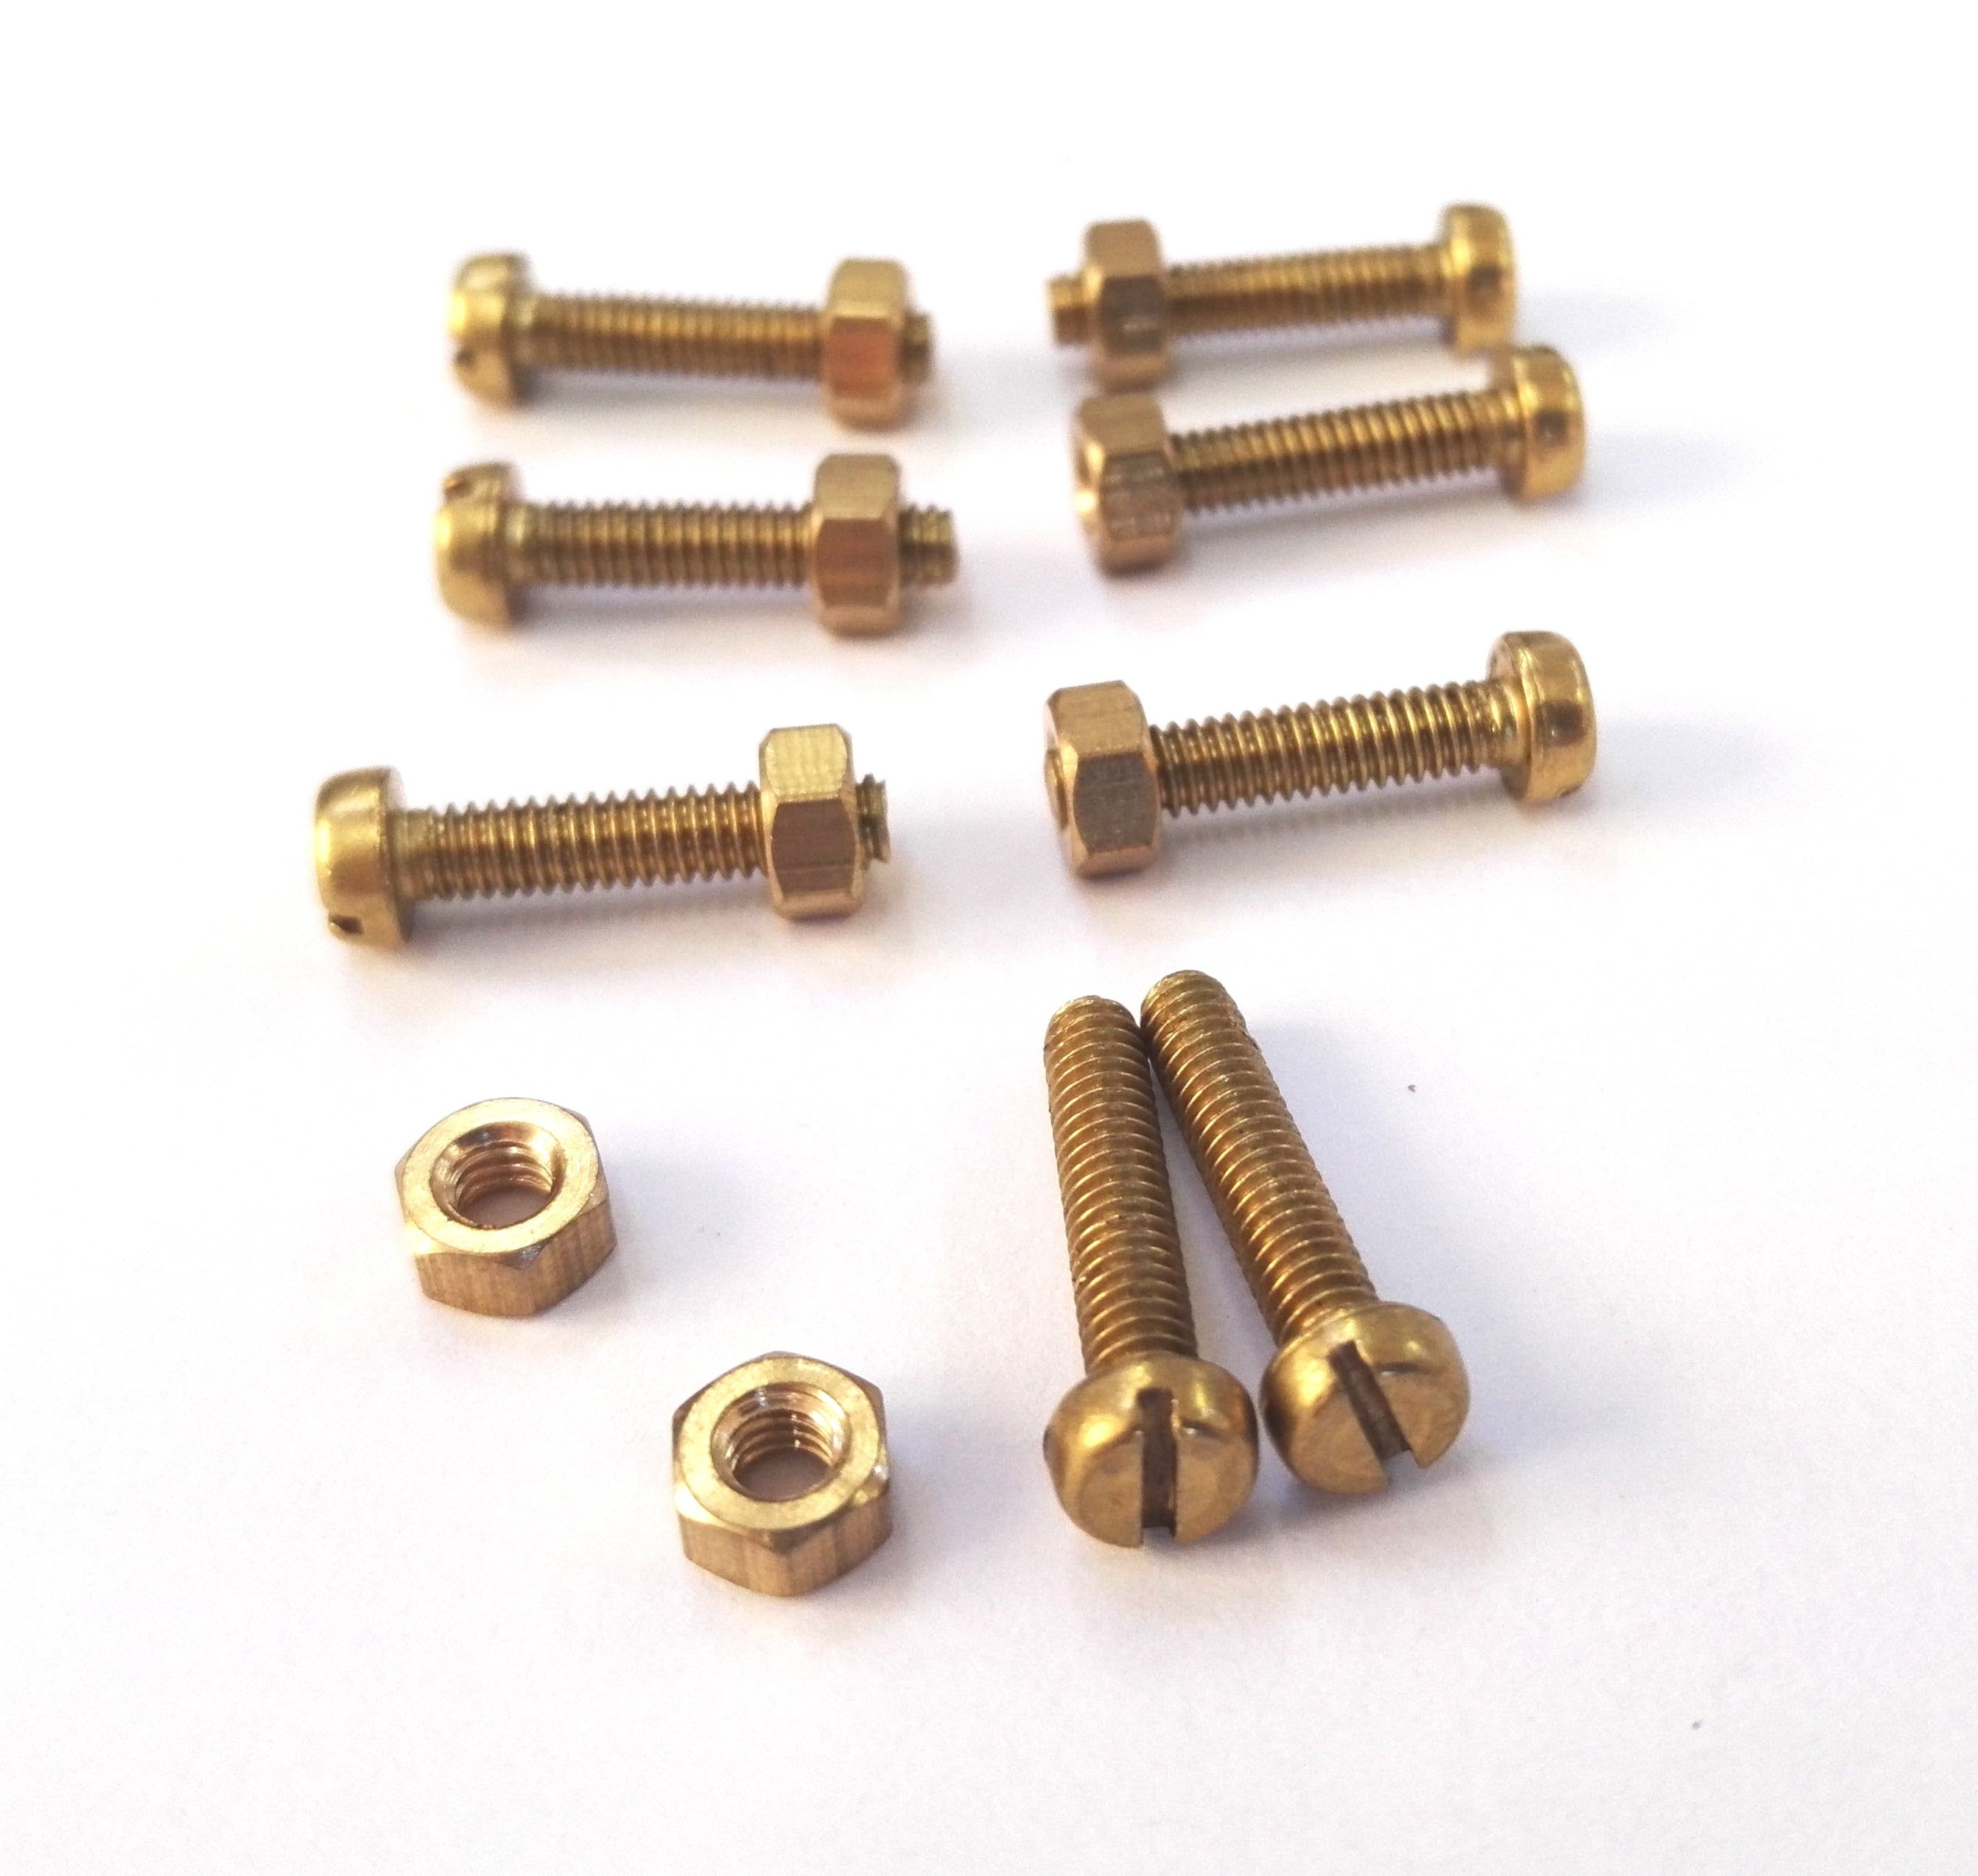 Expo Brass BA Nuts and Bolts - 10ba Counter Sunk